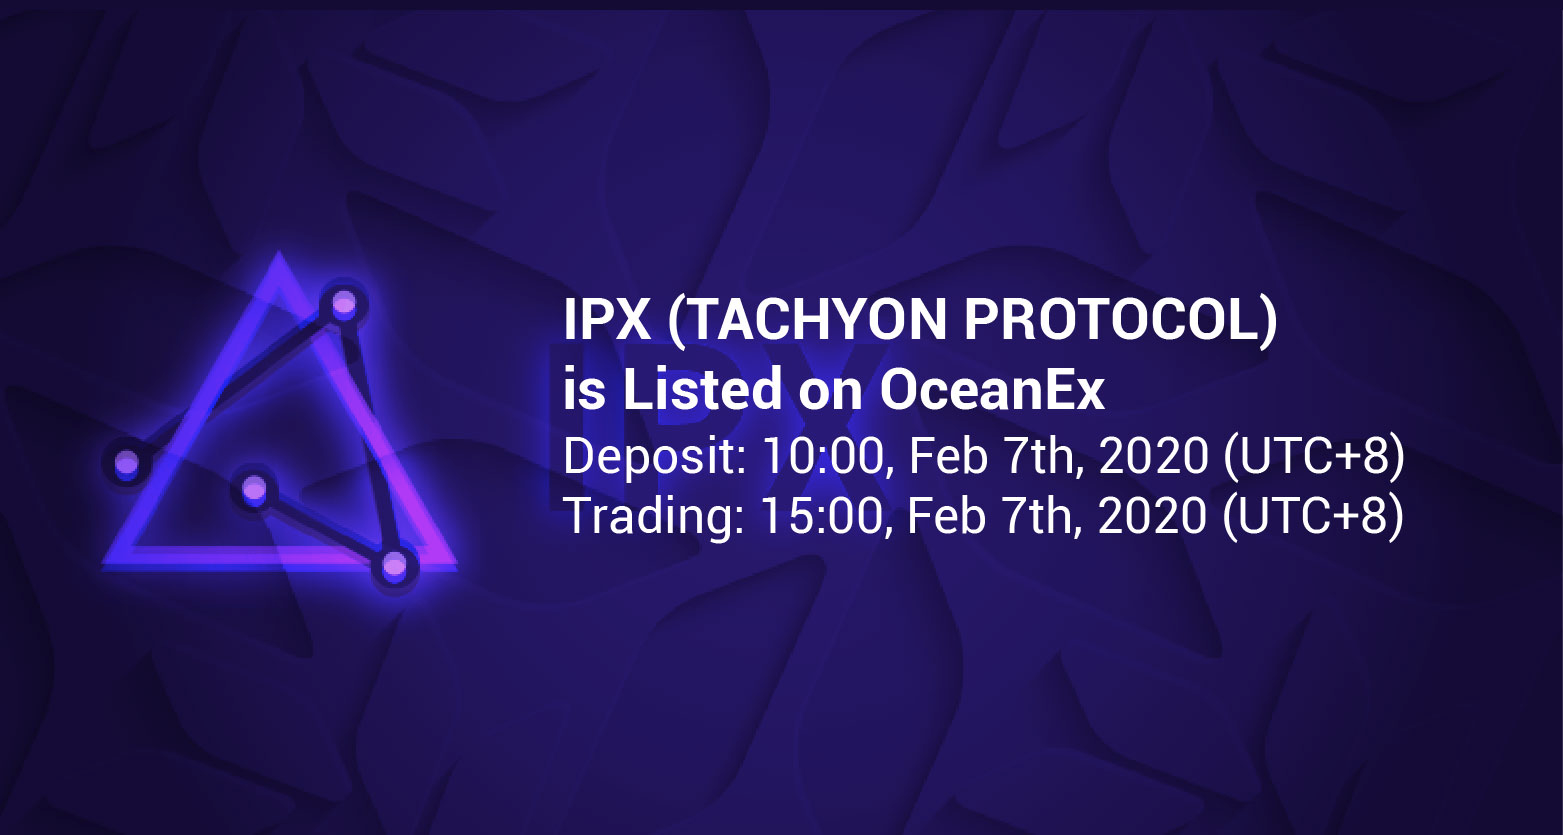 OceanEx Lists IPX (TACHYON PROTOCOL) on February 7th